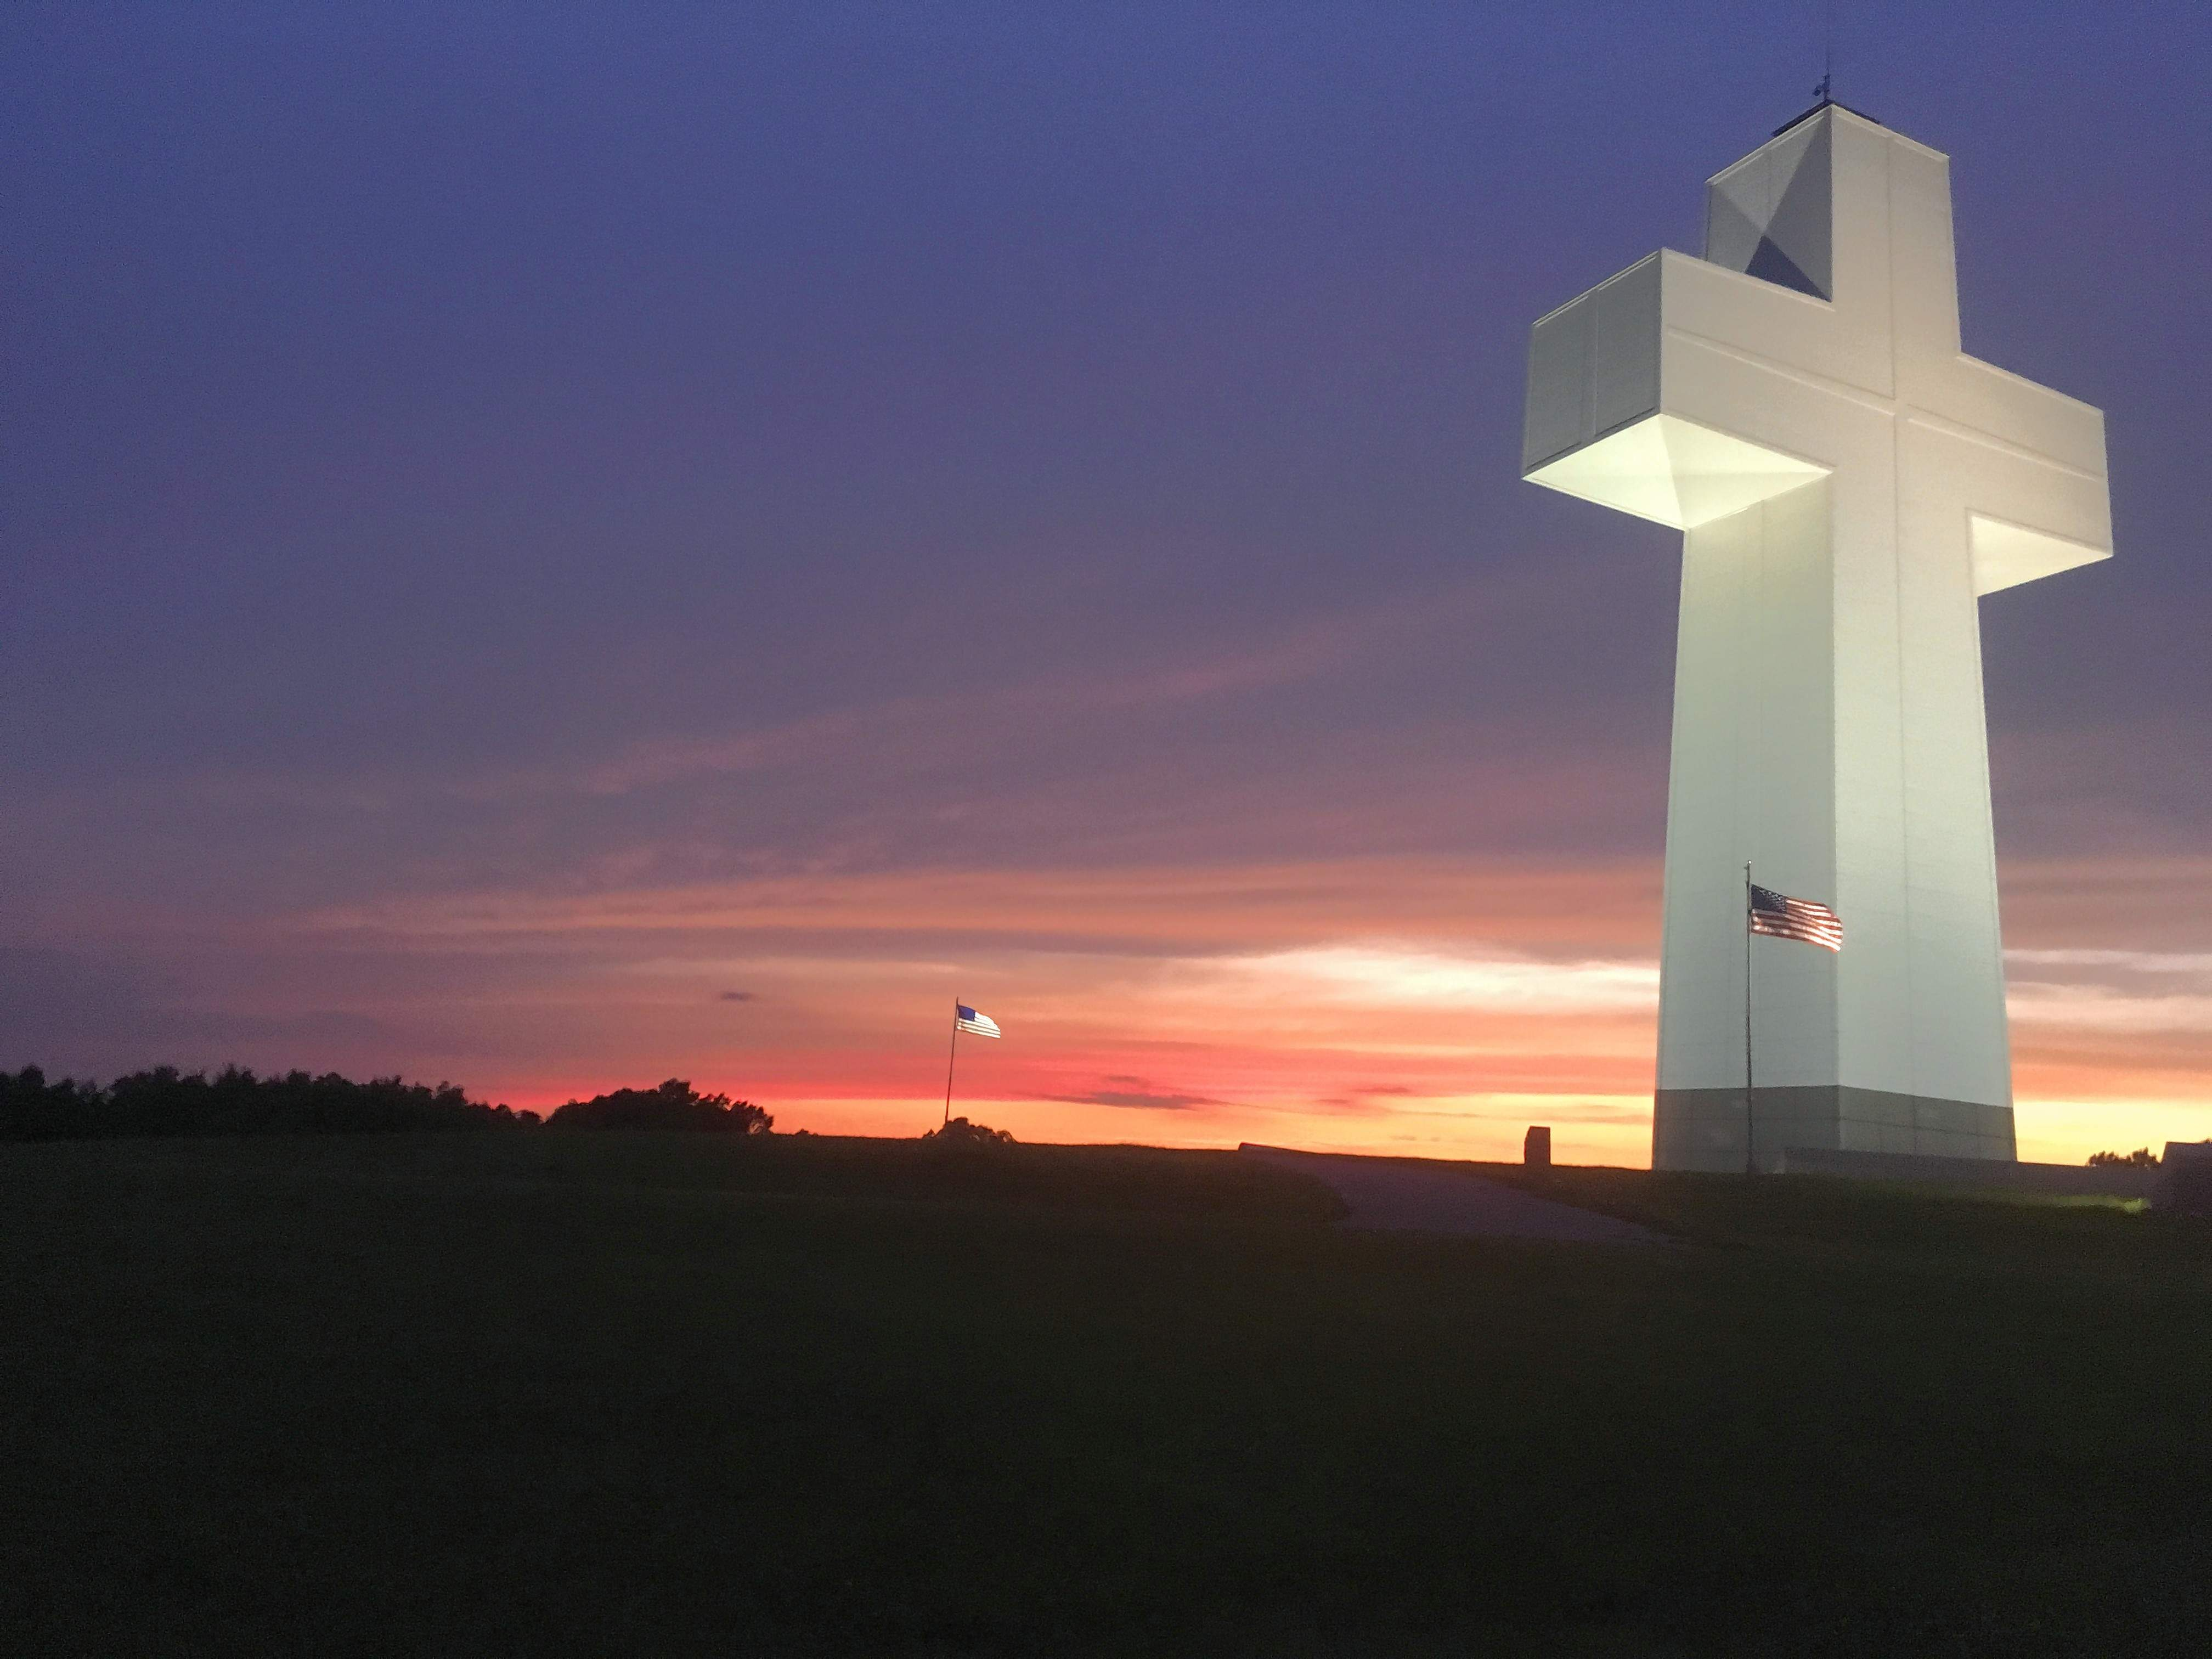 Every year since 1937, hundreds have made the trek to the top of Bald Knob Mountain on Easter Sunday to usher in the dawn and celebrate with an outdoor service of worship and praise.